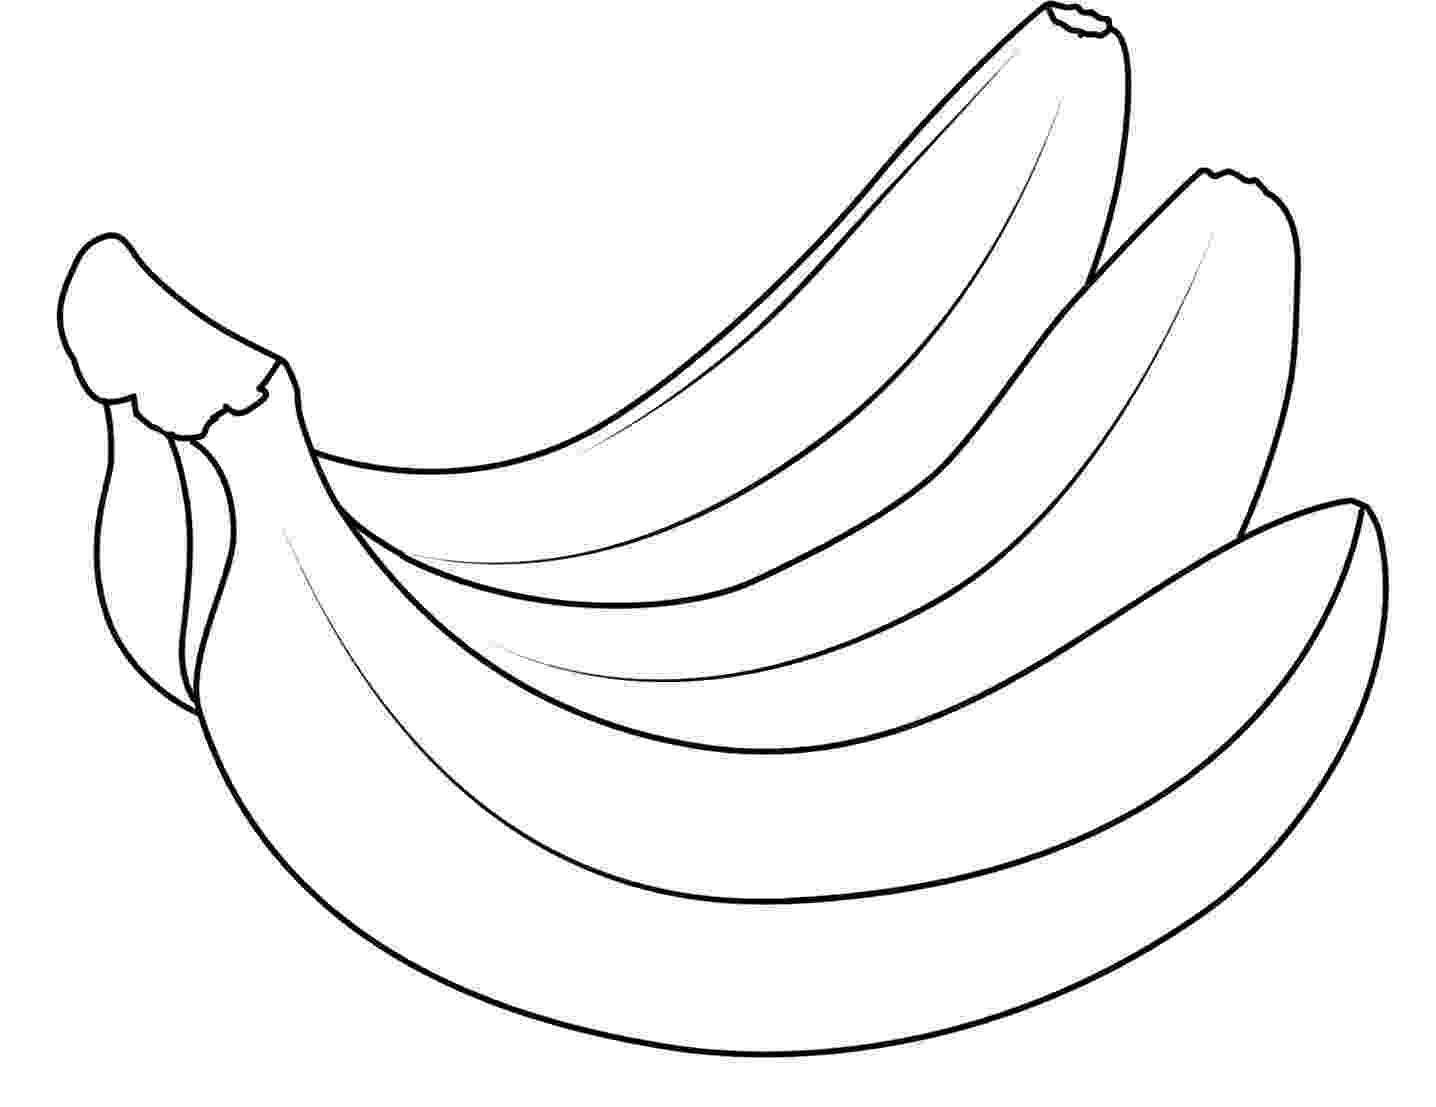 pictures of bananas to color apples and bananas coloring pages download and print for free to color bananas of pictures